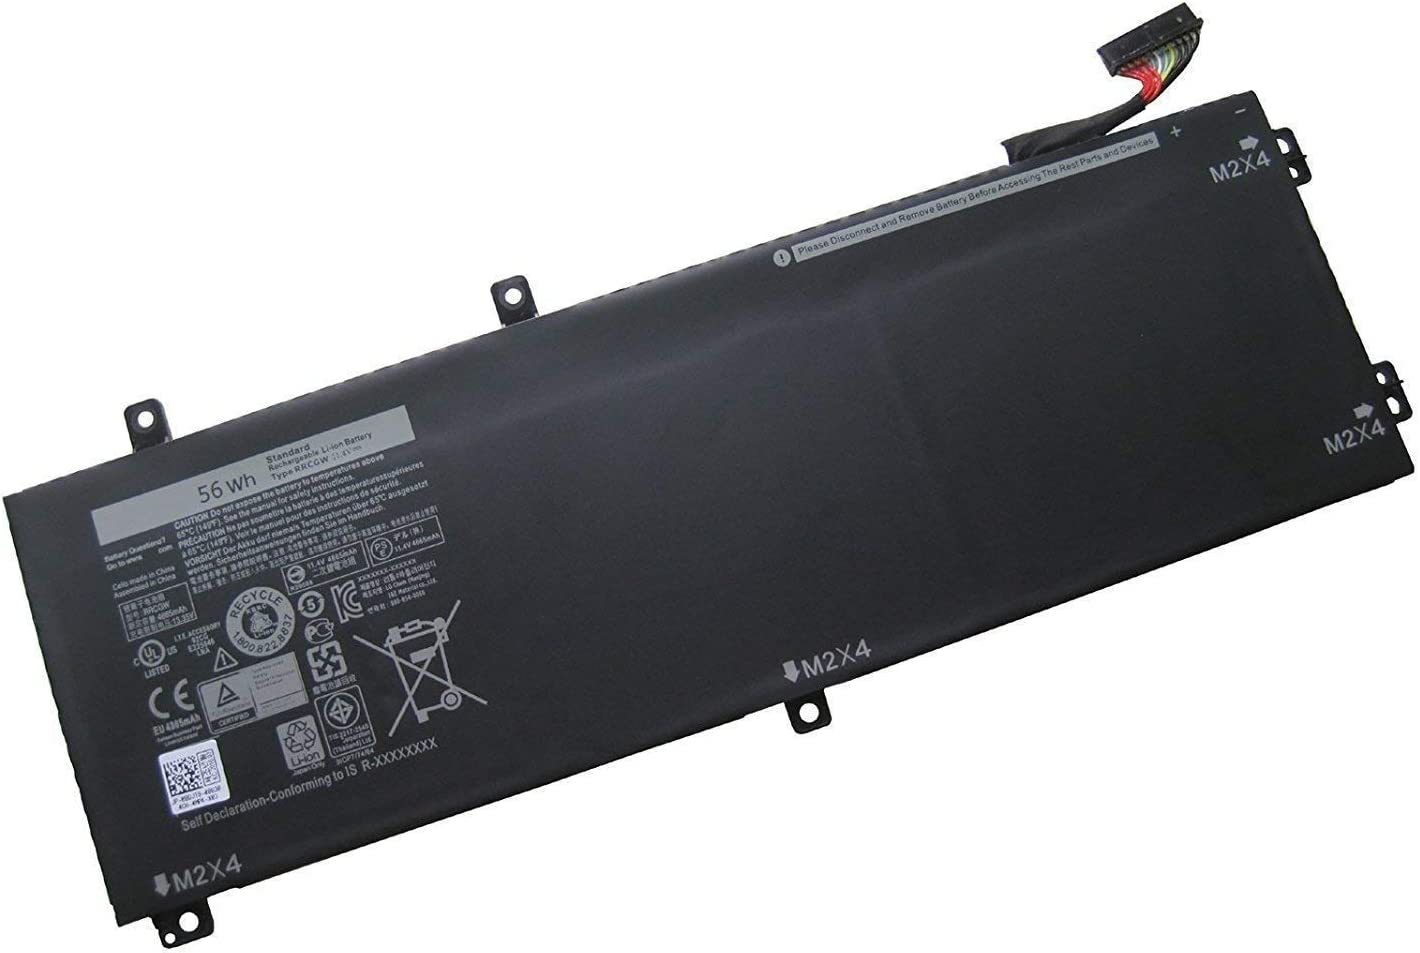 SERNN RRCGW Replacement Laptop Battery Compatible with Dell XPS 15 9550 Dell Precision 5510 RRCGW M7R96 62MJV [11.4V 56Wh]